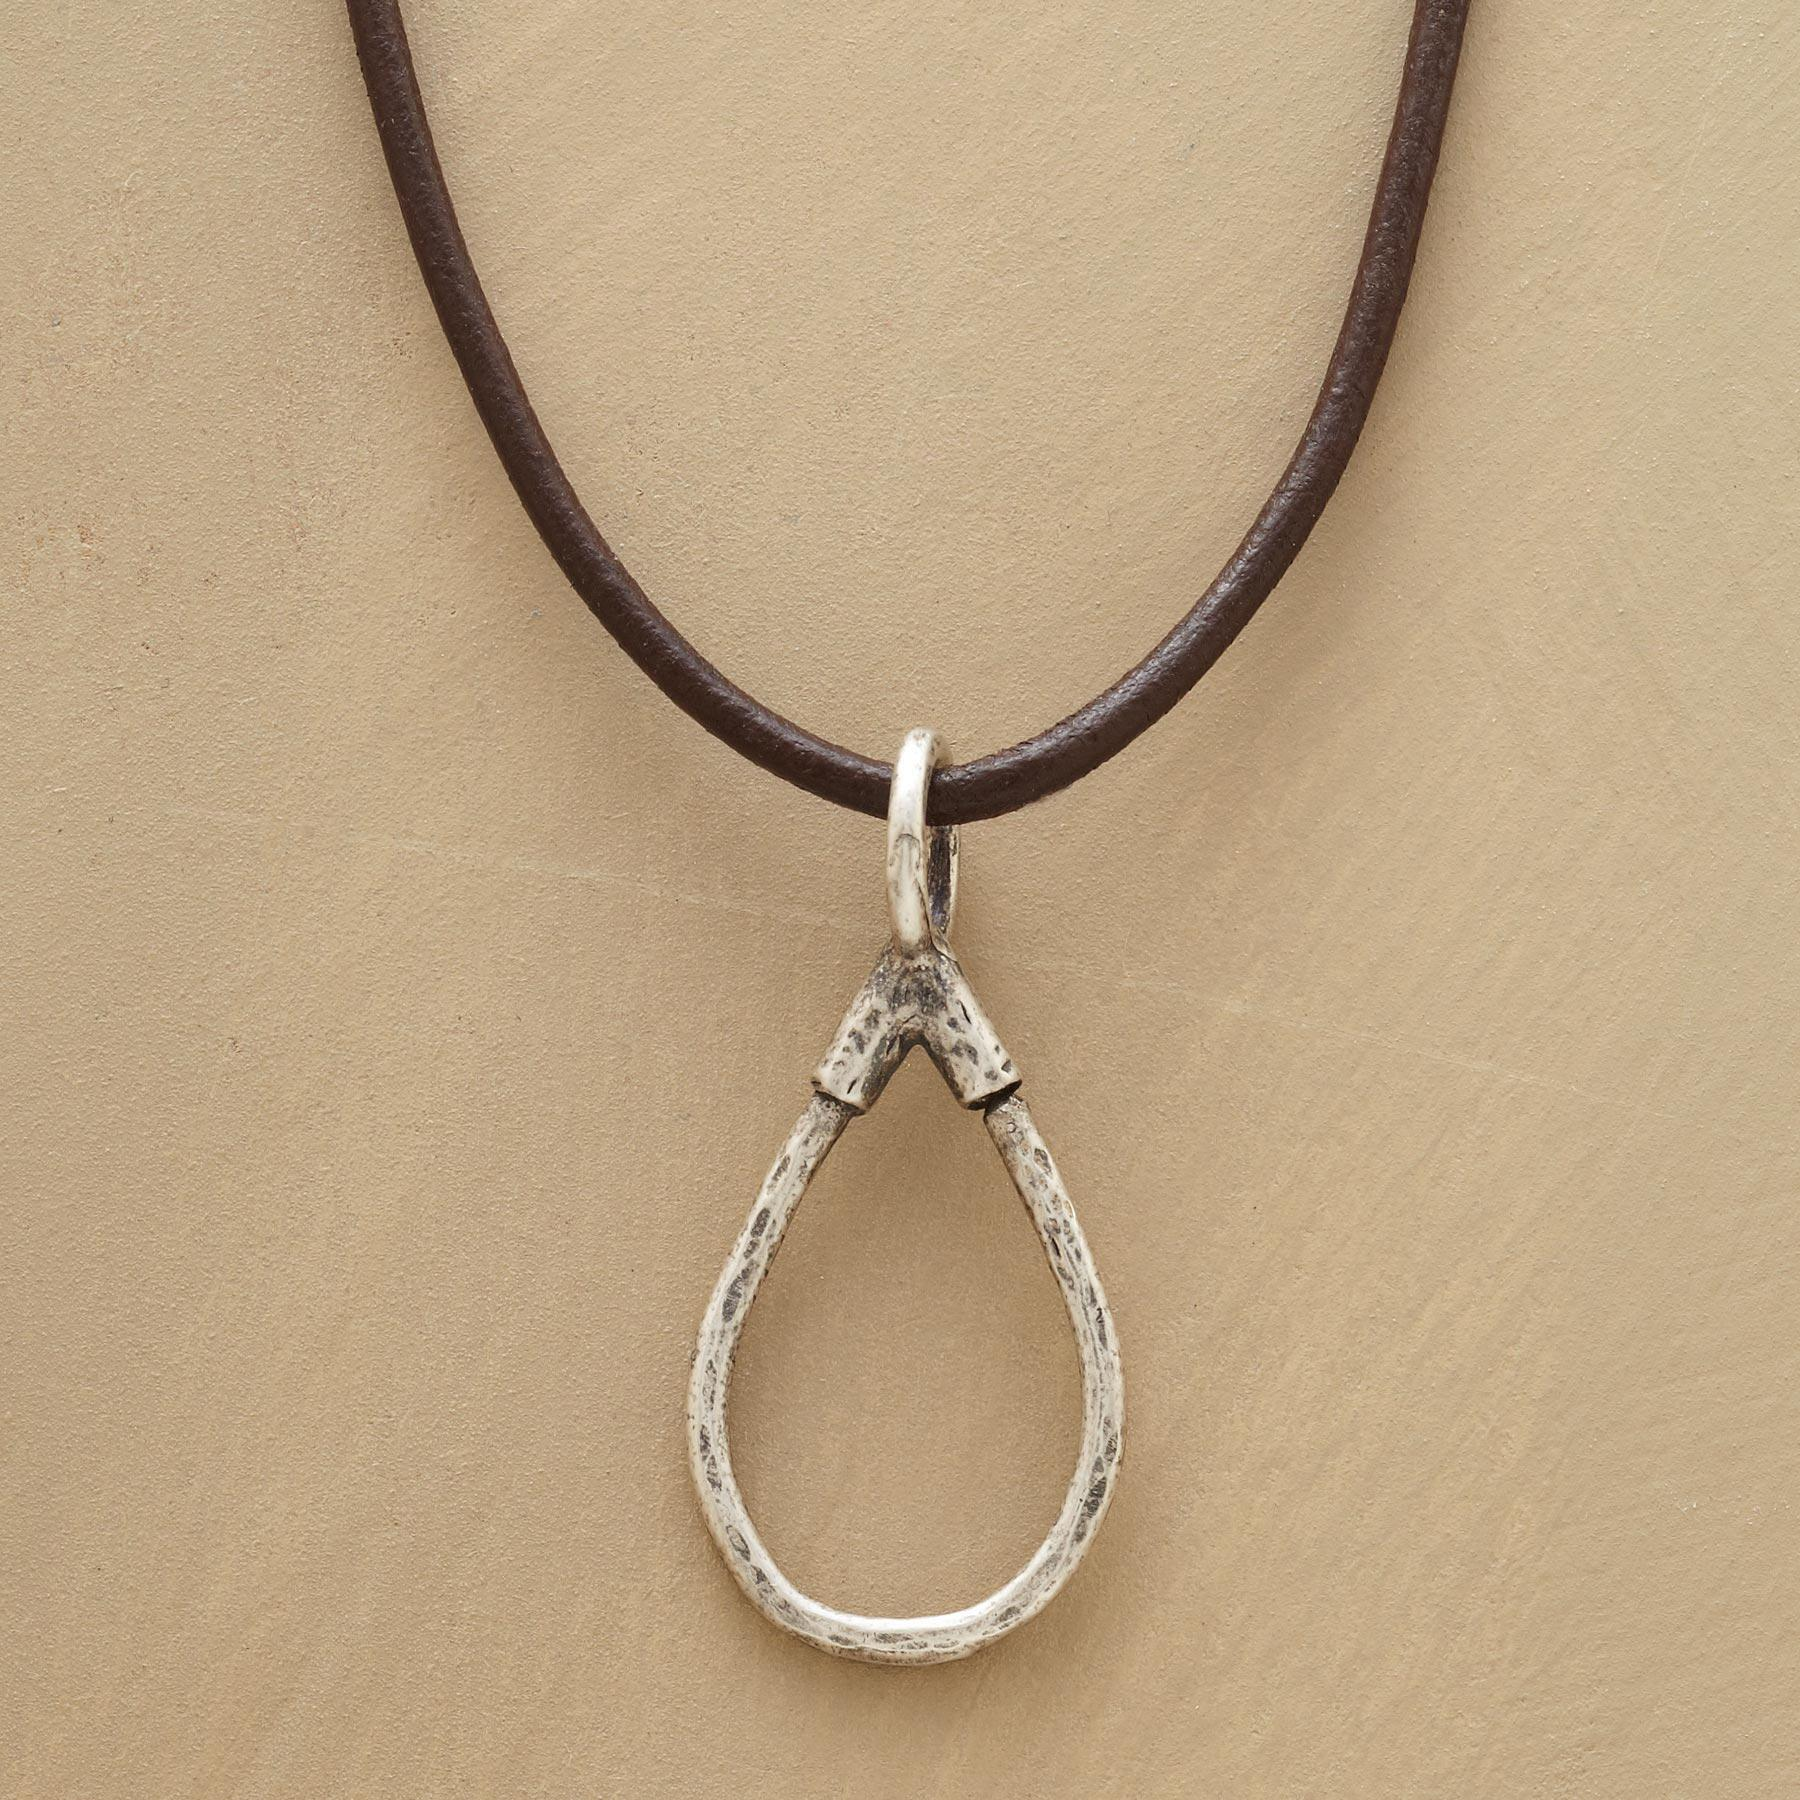 STERLING LEATHER CHARMHOLDER NECKLACE: View 1